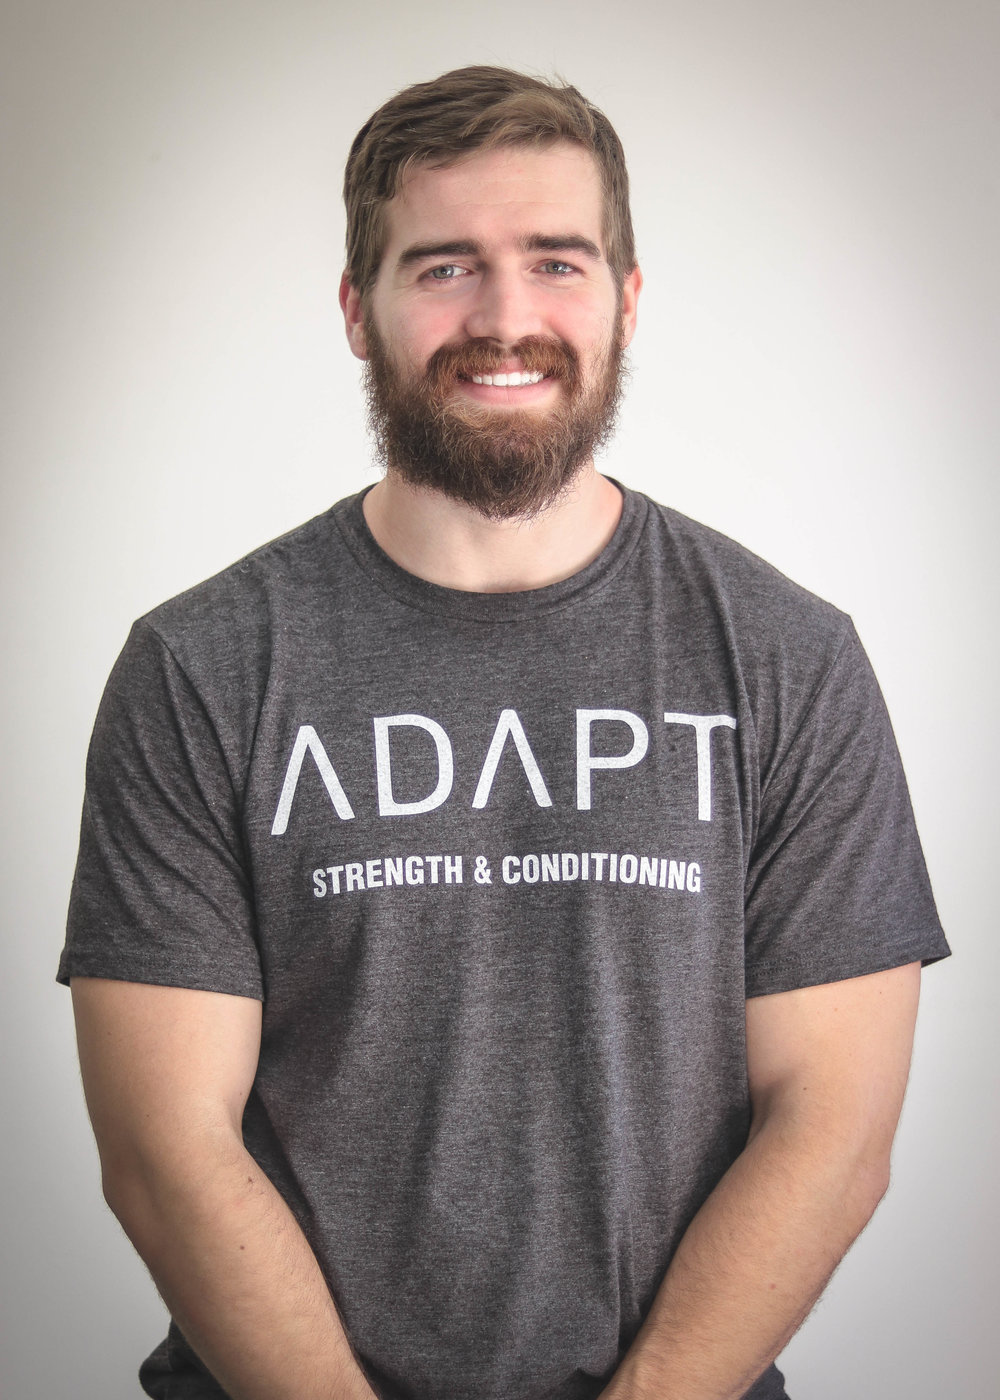 Bo Alexander - Adapt | Innovating Human Performance